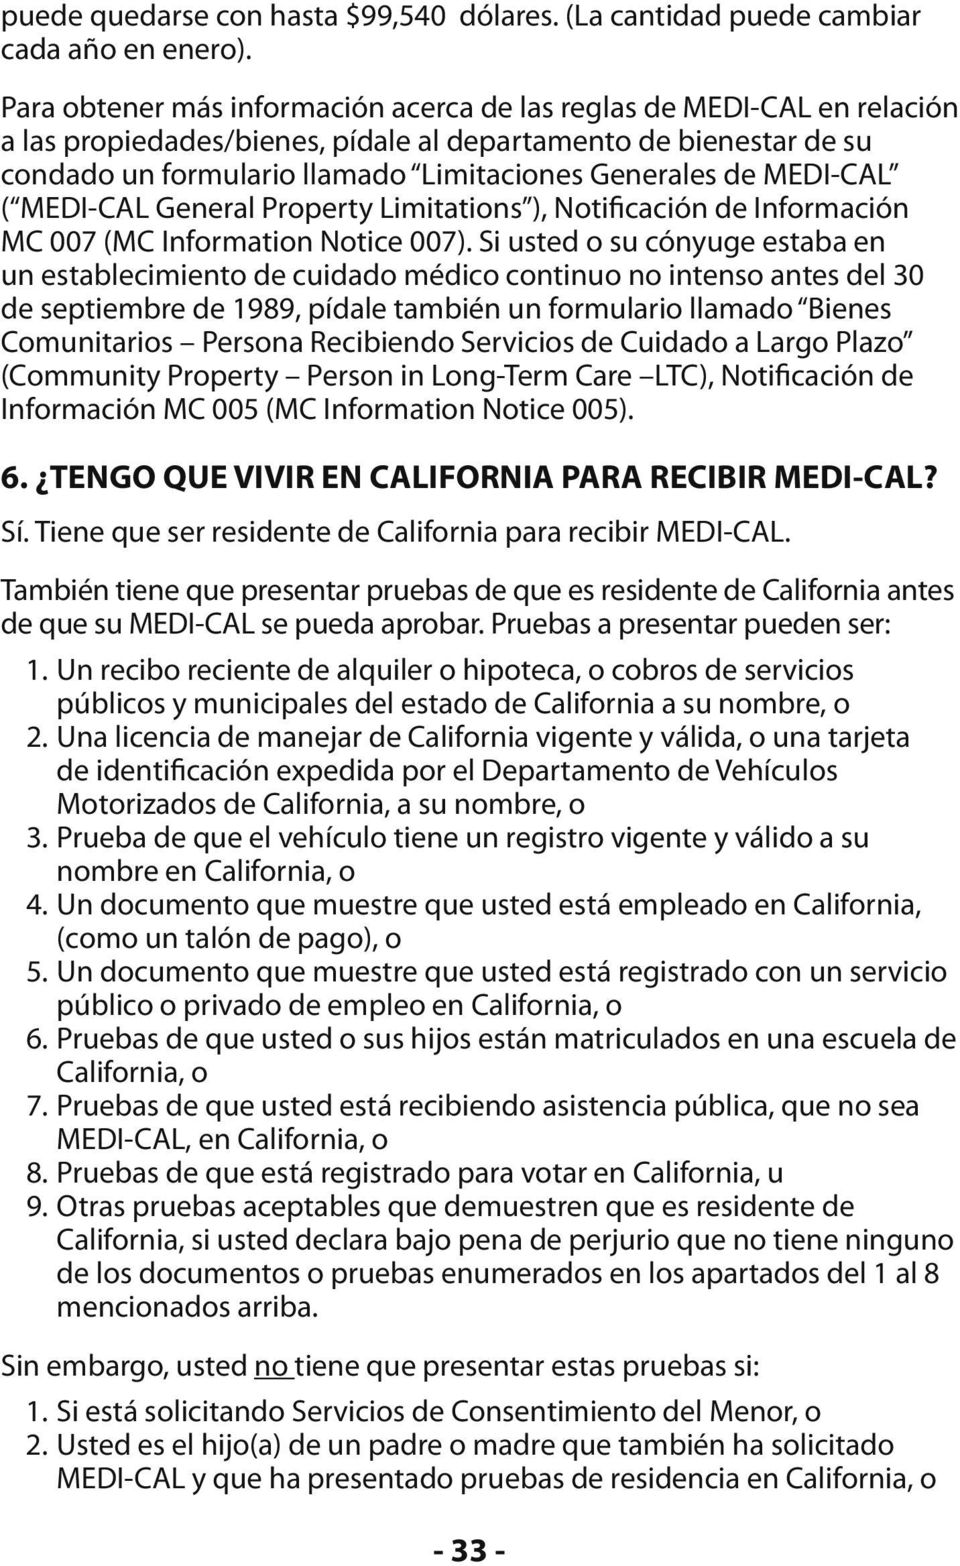 MEDI-CAL ( MEDI-CAL General Property Limitations ), Notificación de Información MC 007 (MC Information Notice 007).